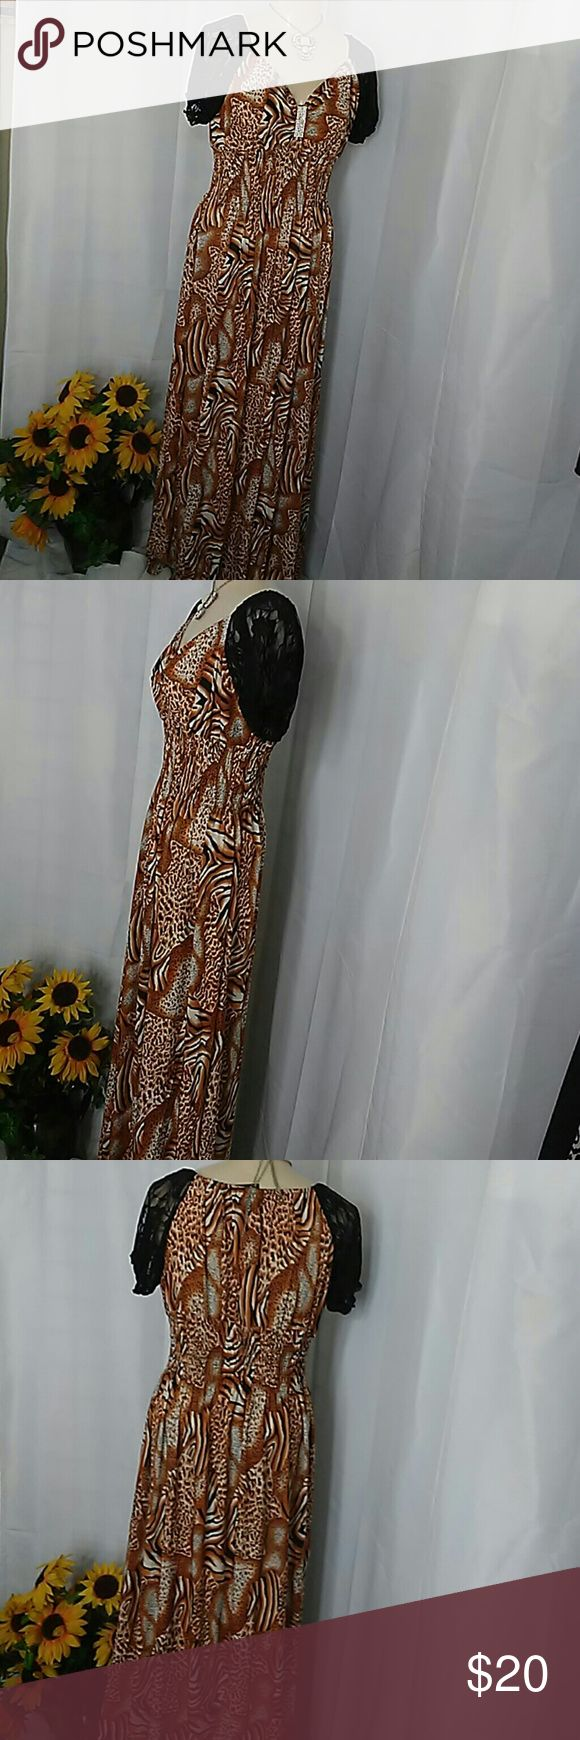 Animal Print Maxi Dress Smocked waist size XL WILL FIT UP TO 1X. BLACK LACE SLEEVES. BLING GATHERING AT bustline. Very soft silky stretchy fabric. JULIA Dresses Maxi